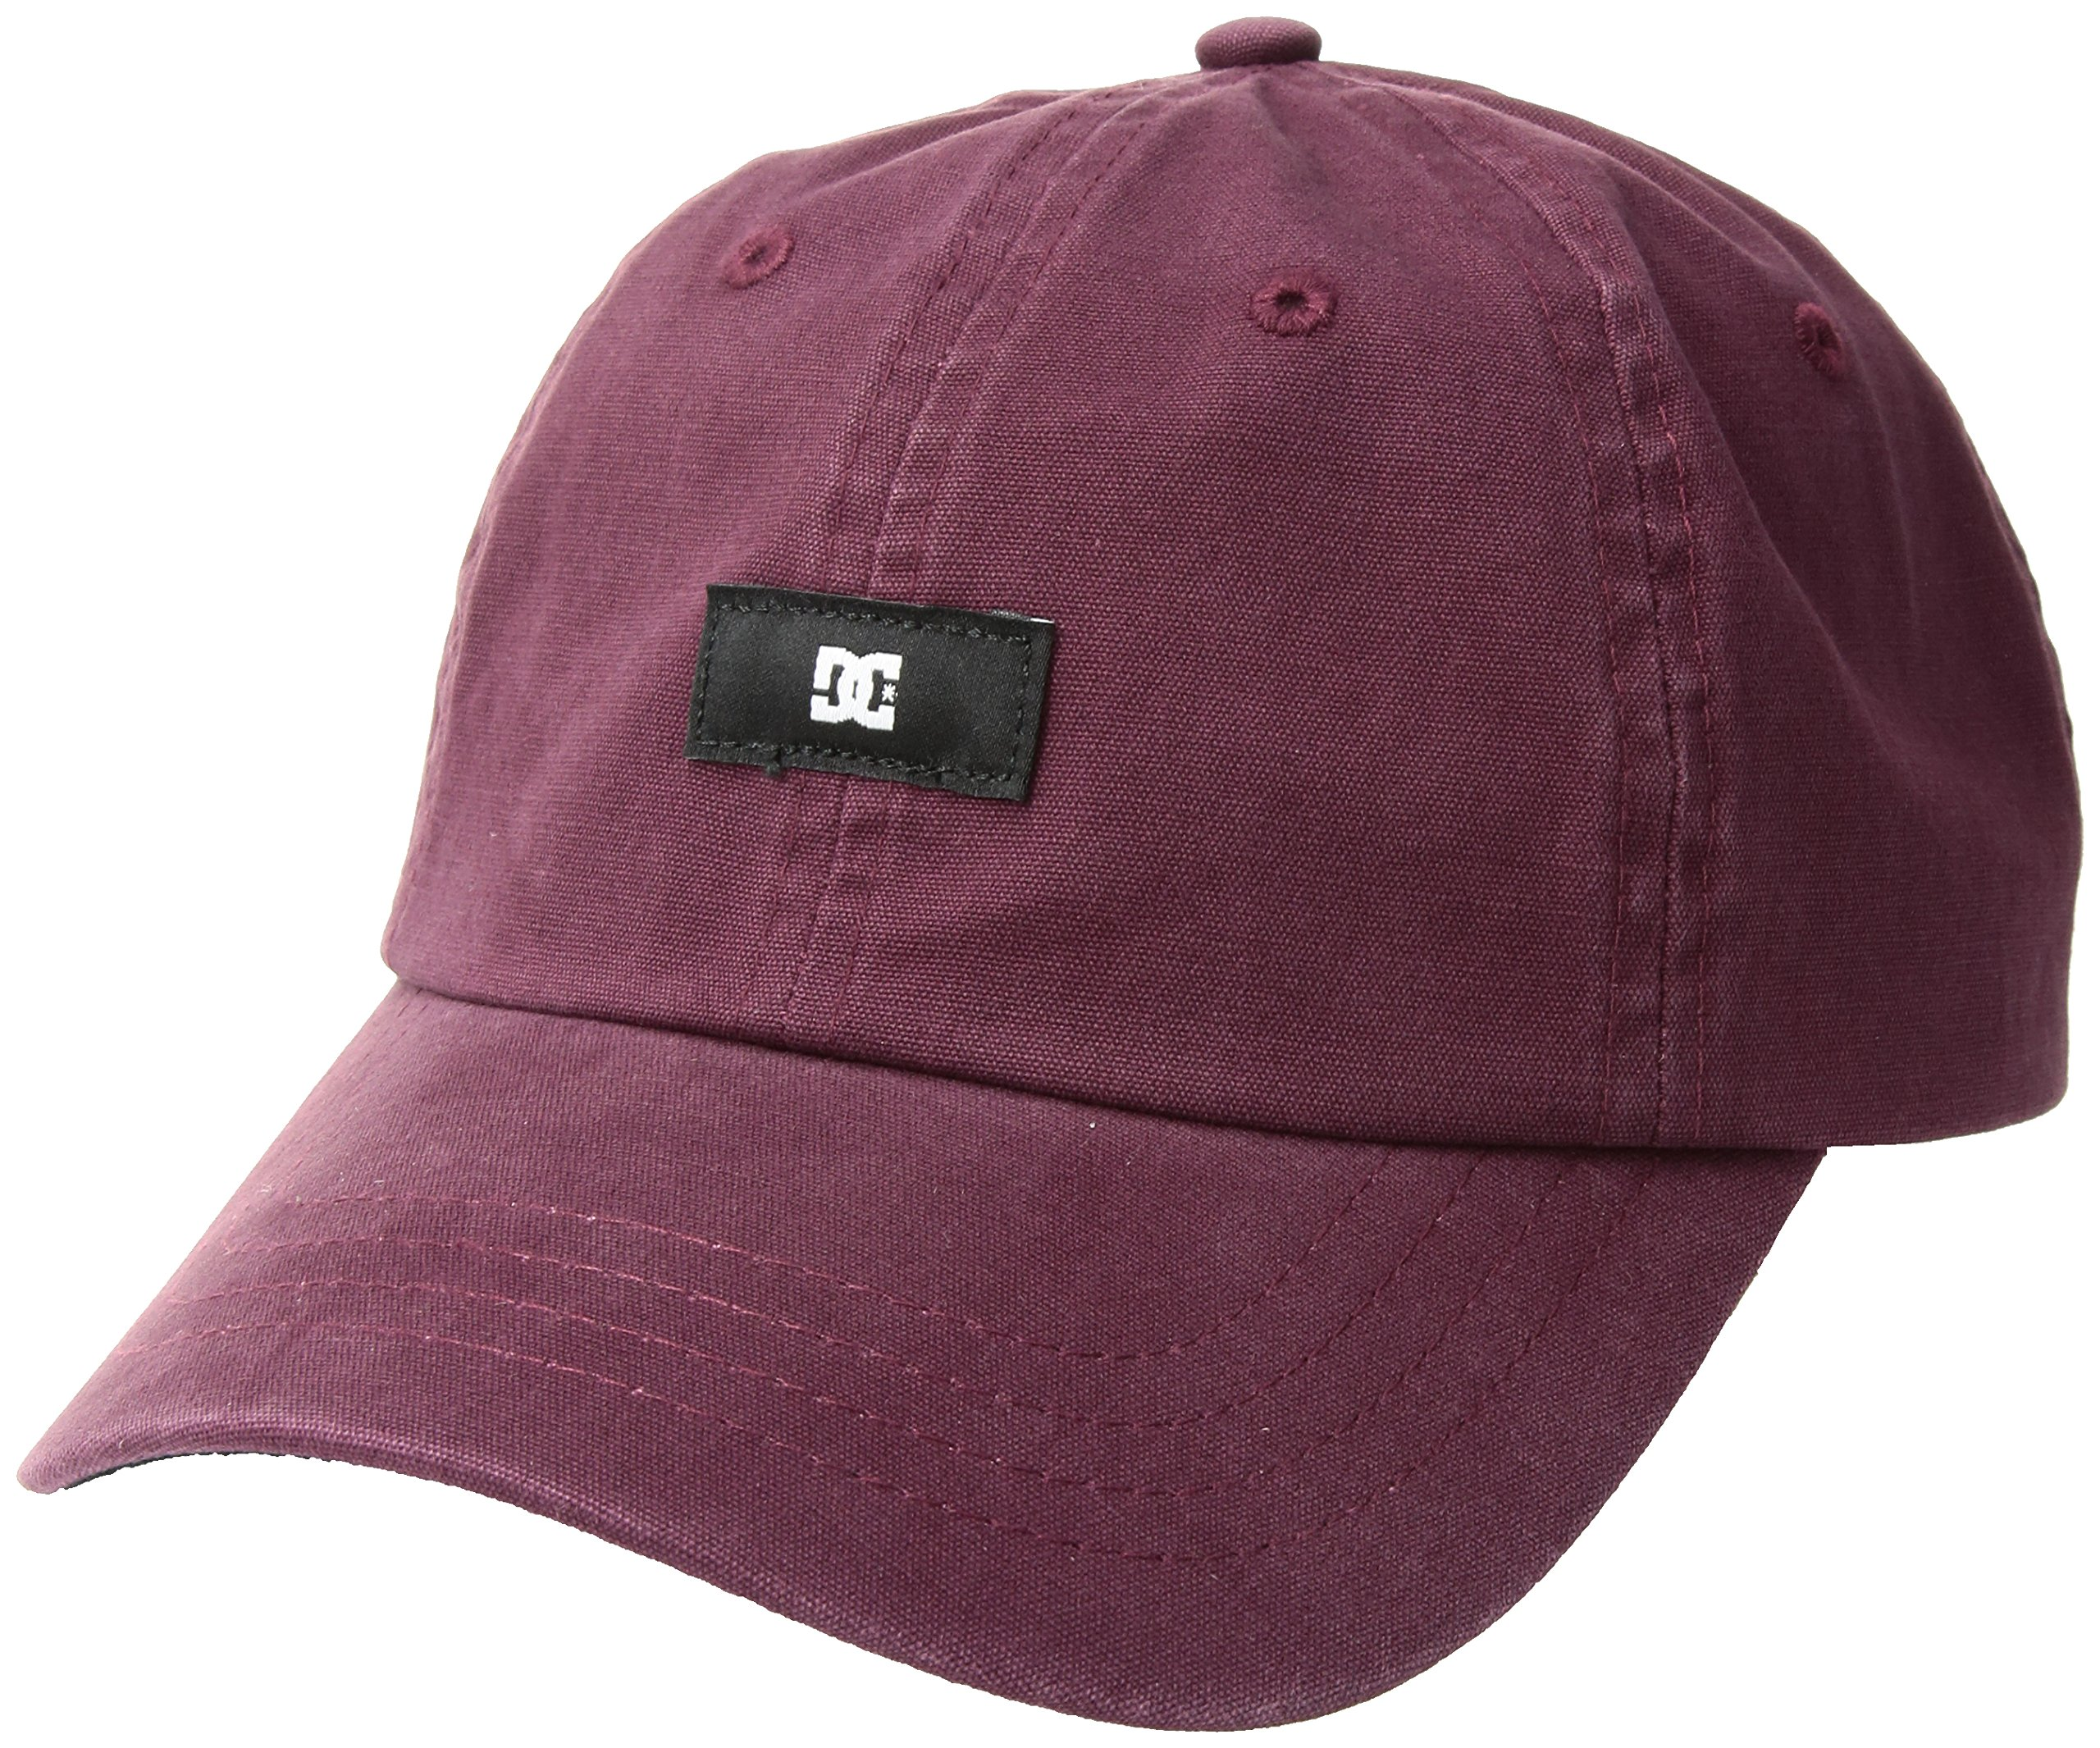 DC Men's Leisure Cap, Port Royale, 1SZ